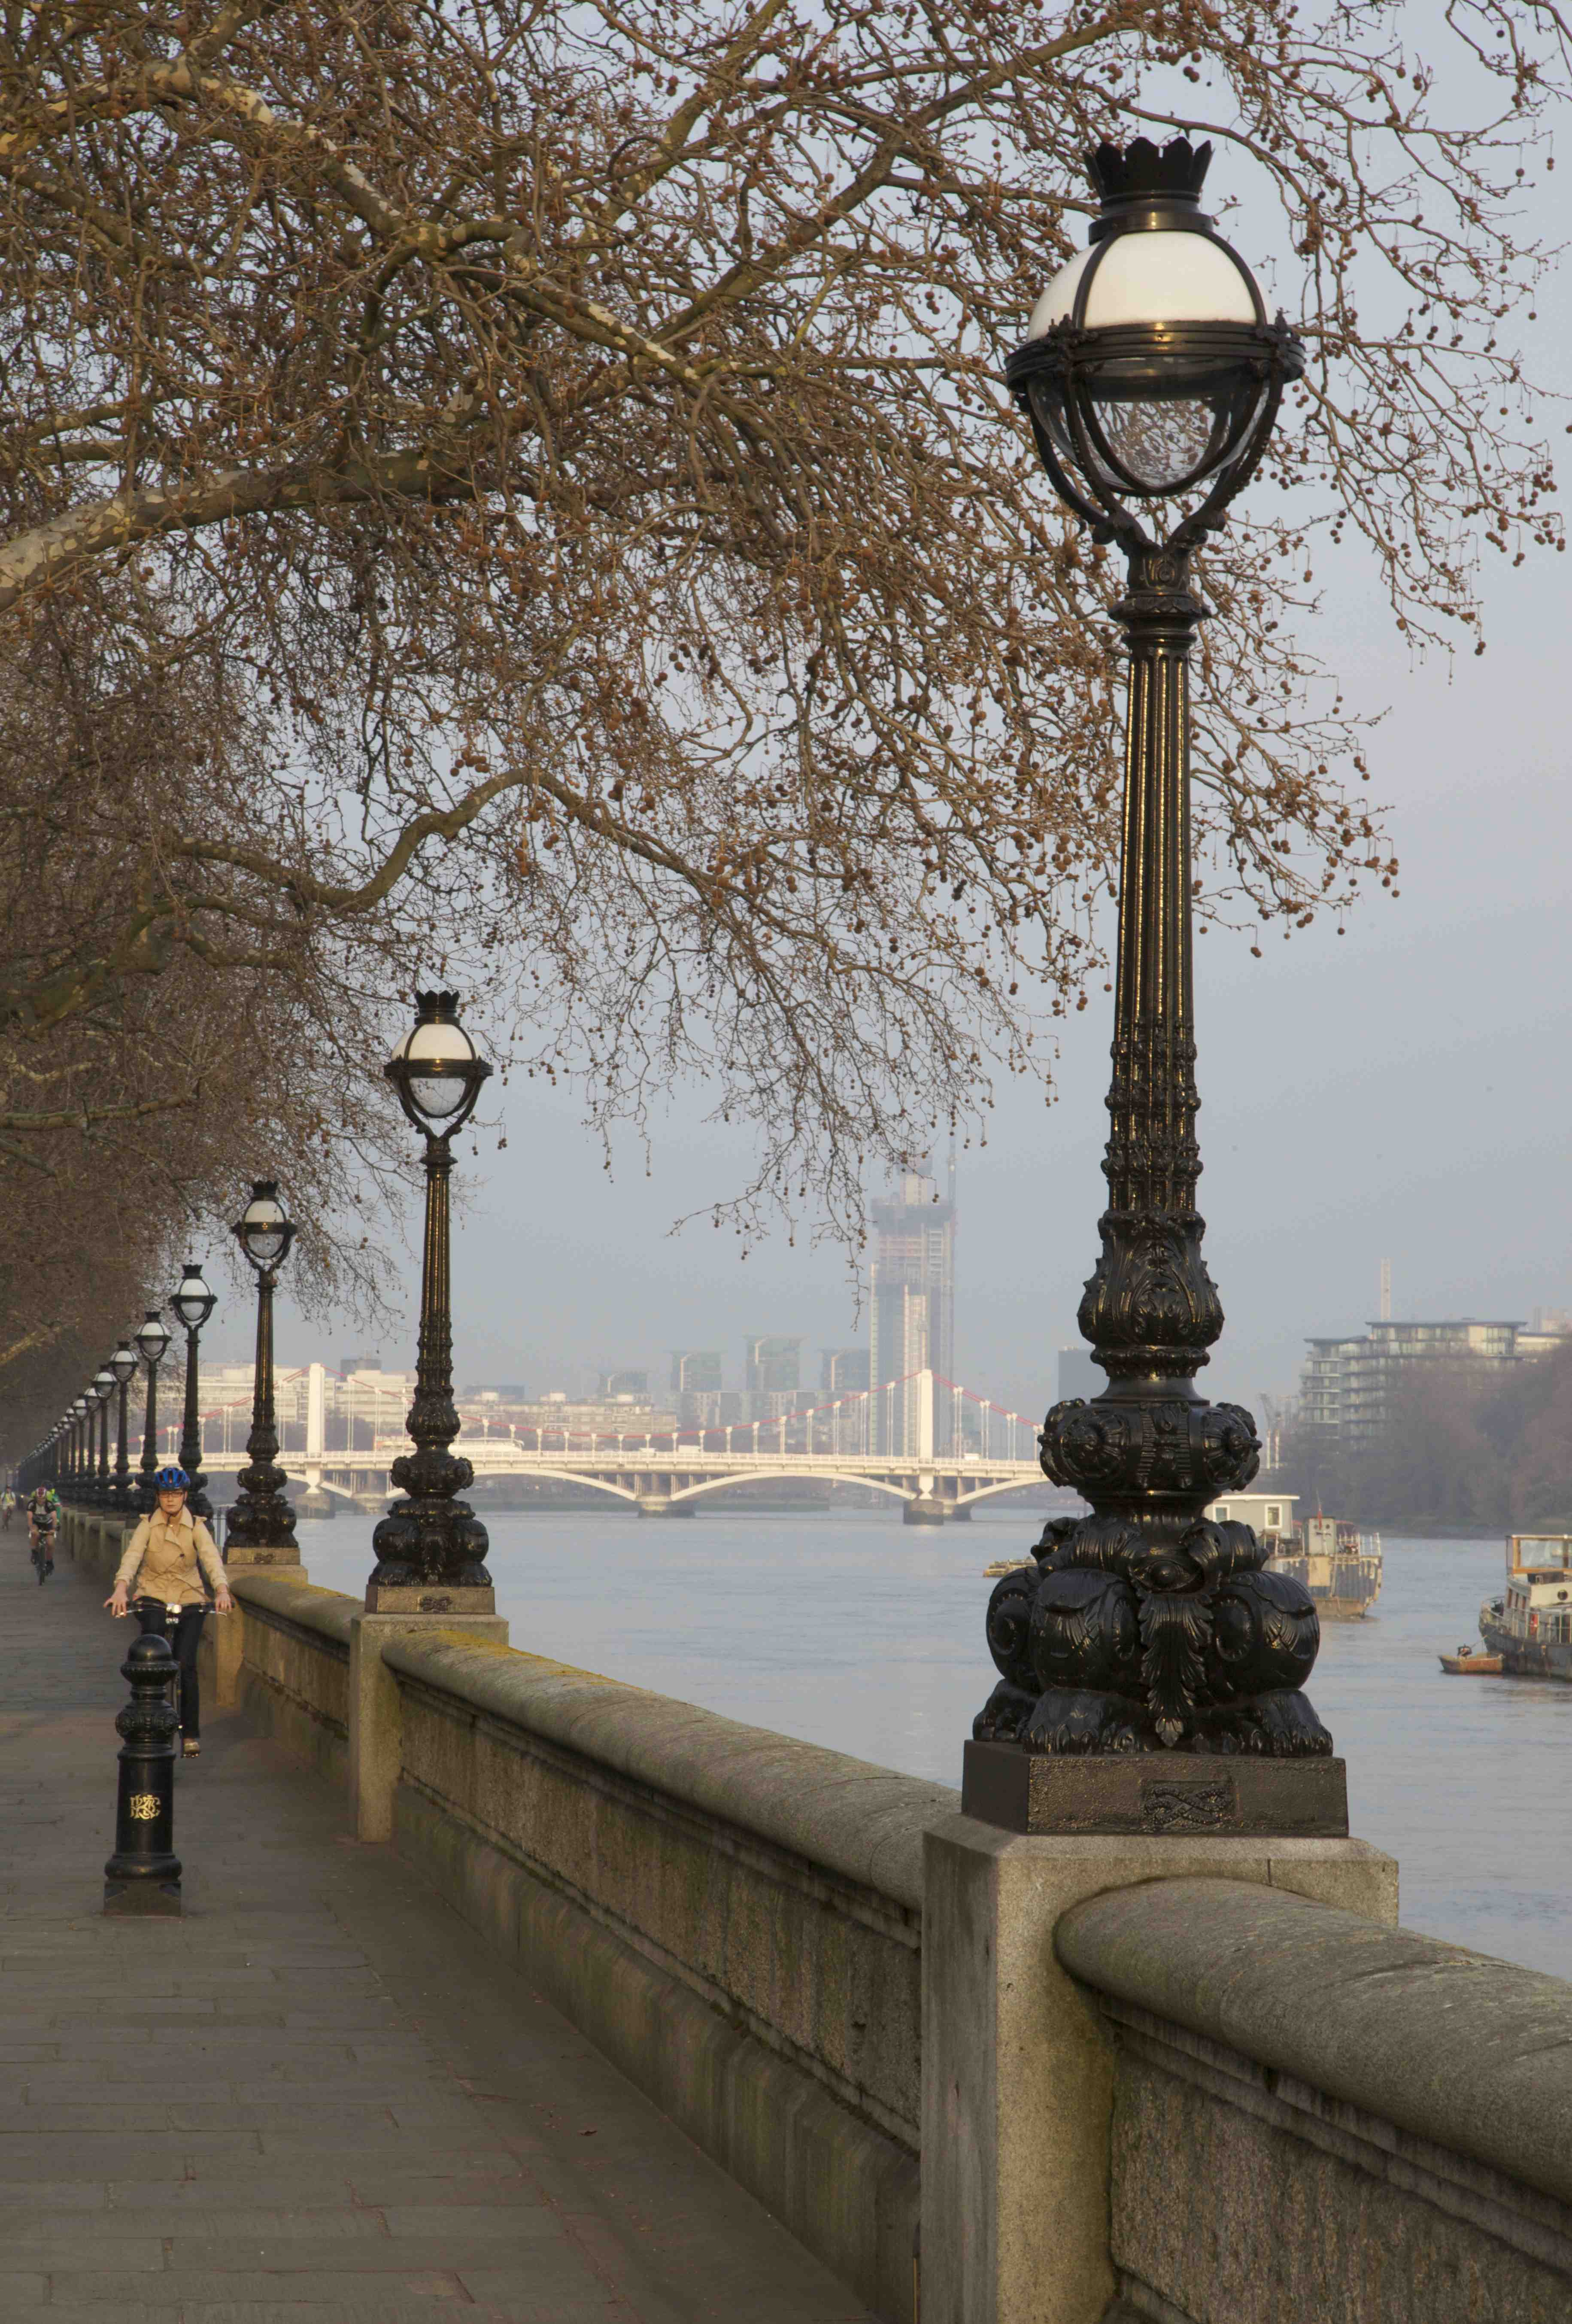 Representing the nation: the Thames Embankment lamps – Paul ...